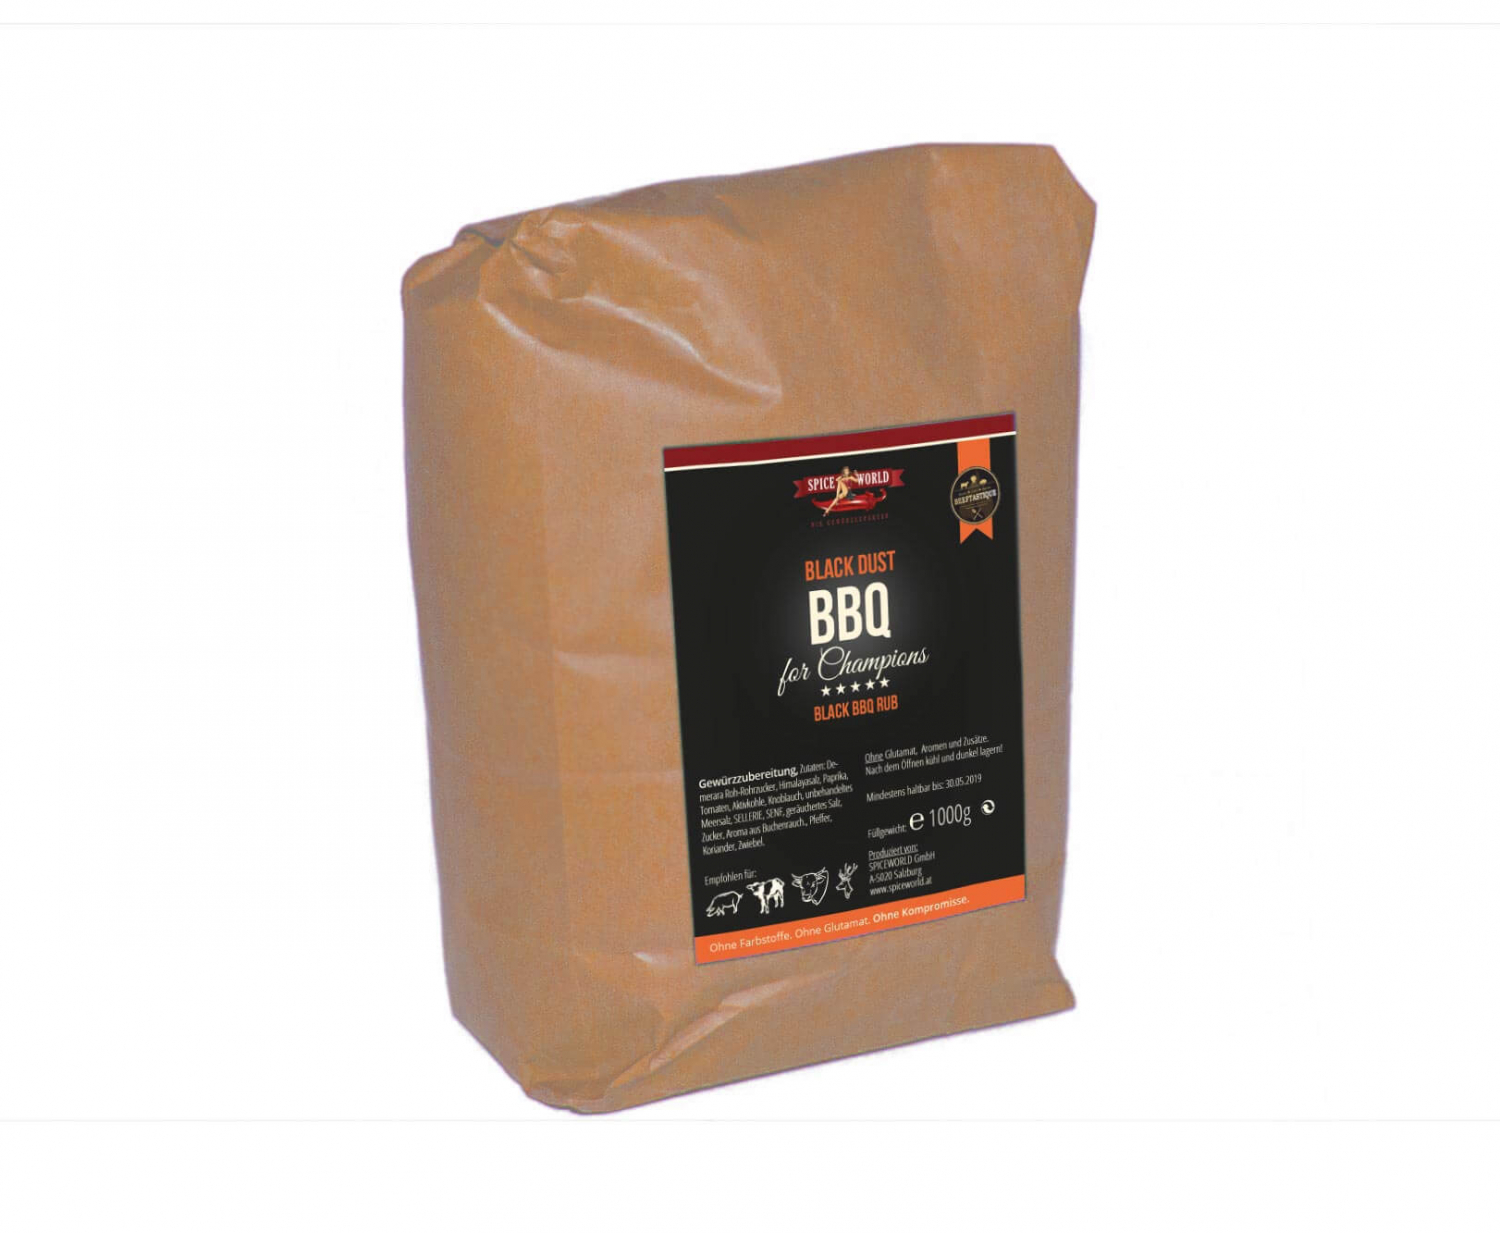 Barbecue for Champions - Black Dust - BBQ Rub - 1000g Beutel 1kg Beutel